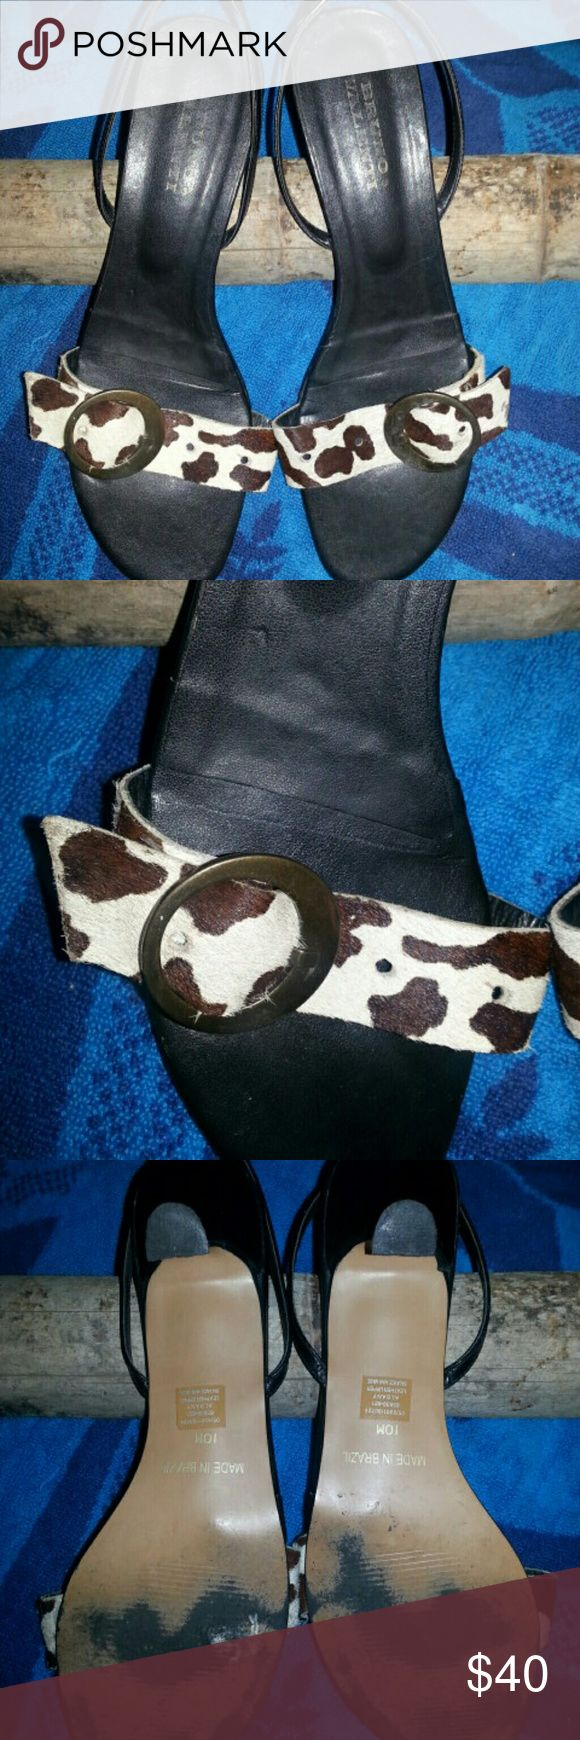 Bruno Valenti Shoes Cow hIde strap sling back strap heels Bruno valinti Shoes Heels